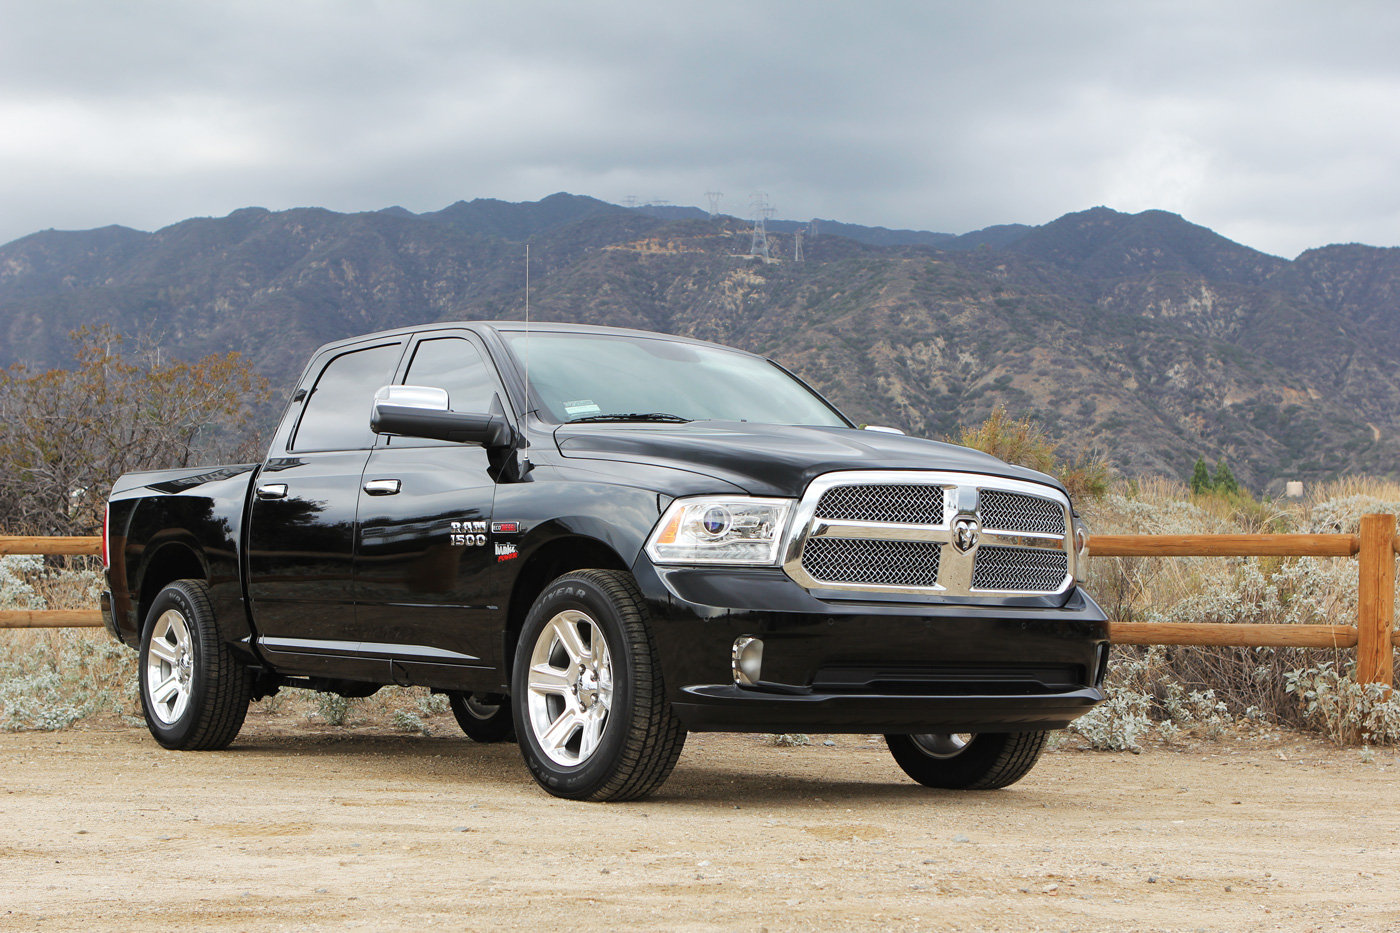 Ram 1500 Ecodiesel Review >> 2014 2016 Ram 1500 Ecodiesel Power And Mpg Upgrades Banks Power